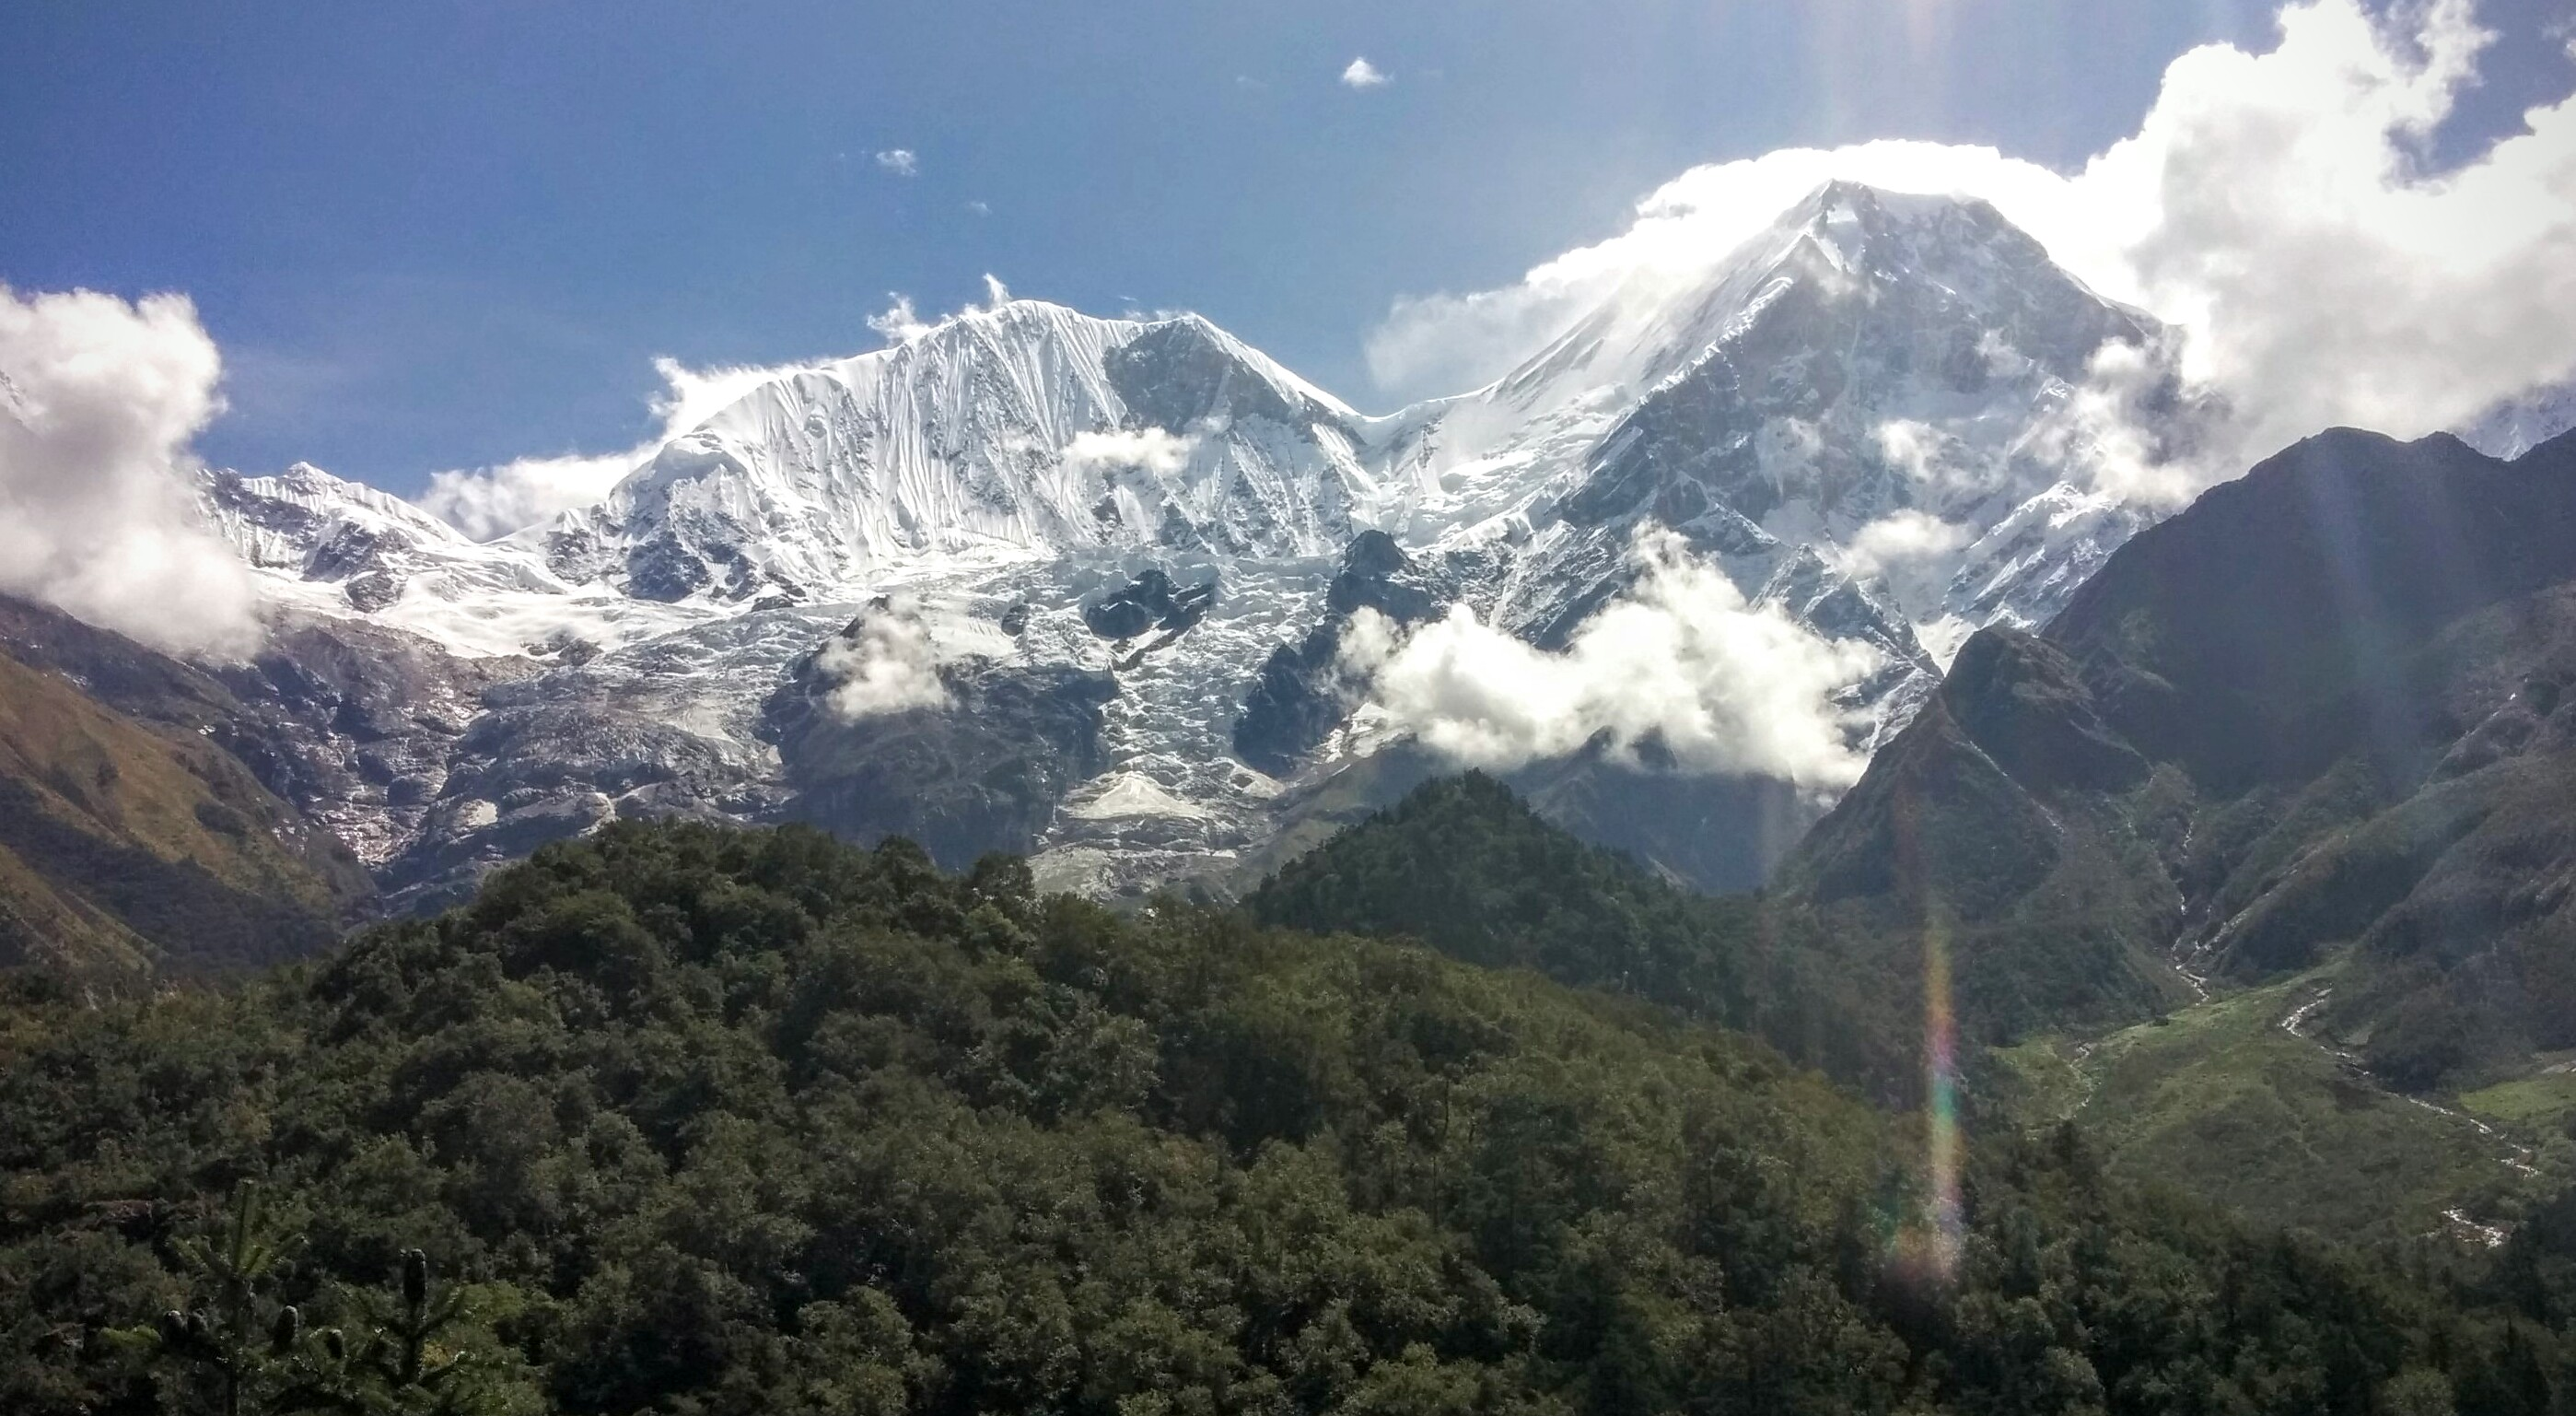 First sights of mighty Manaslu